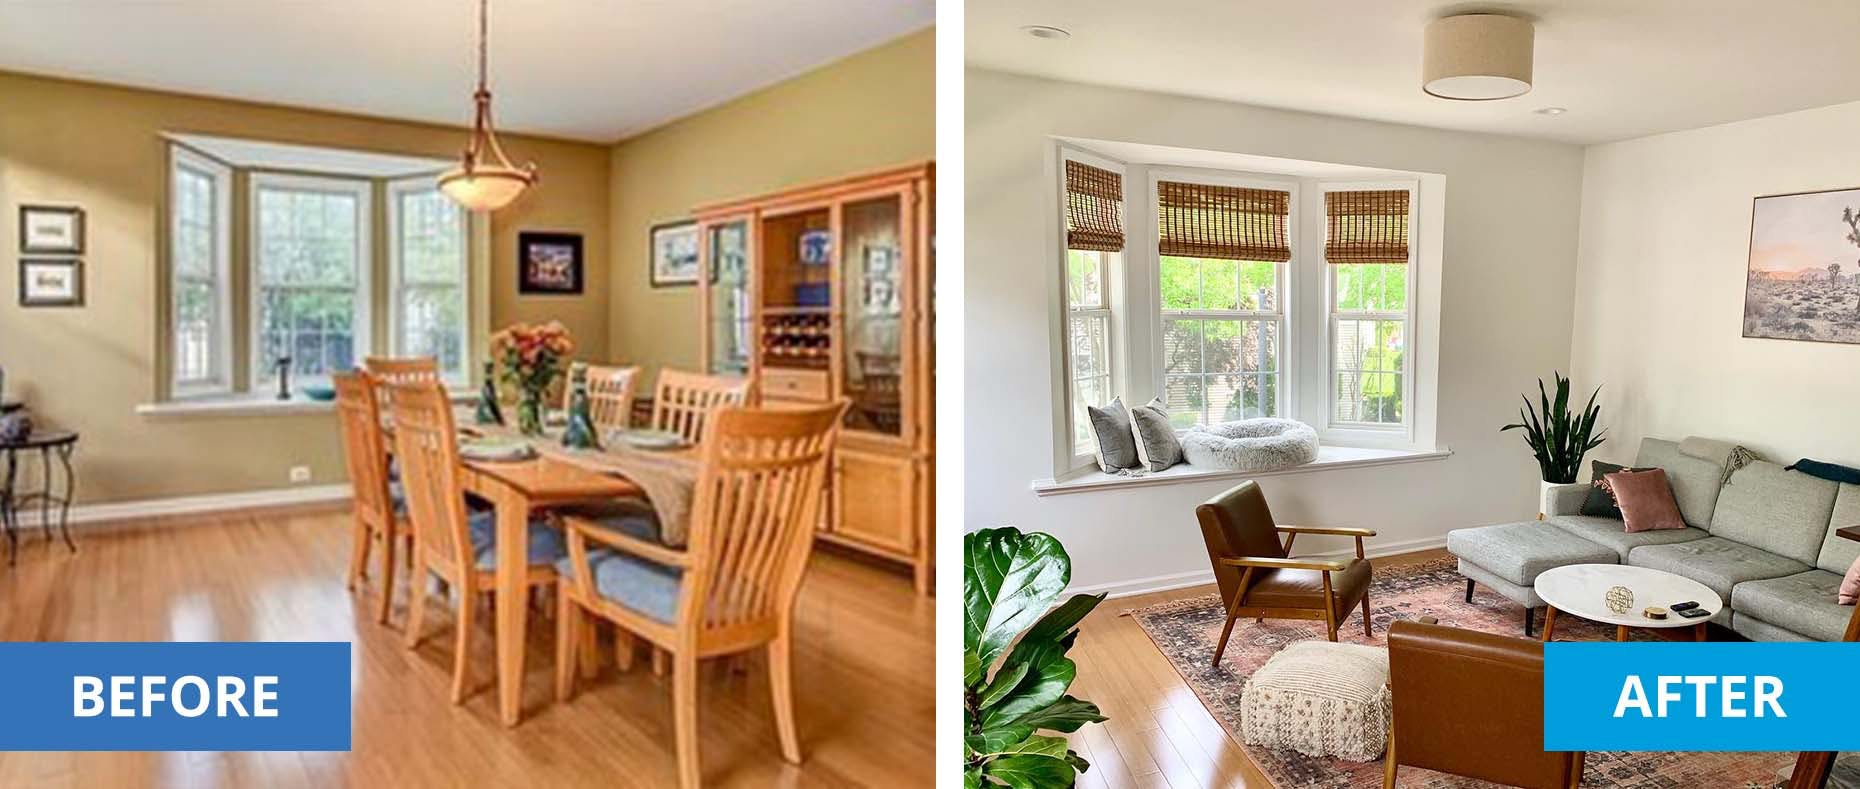 Left is a beige, plain dining room. Right is the same room converted into a living room with white walls and woven wood shades.